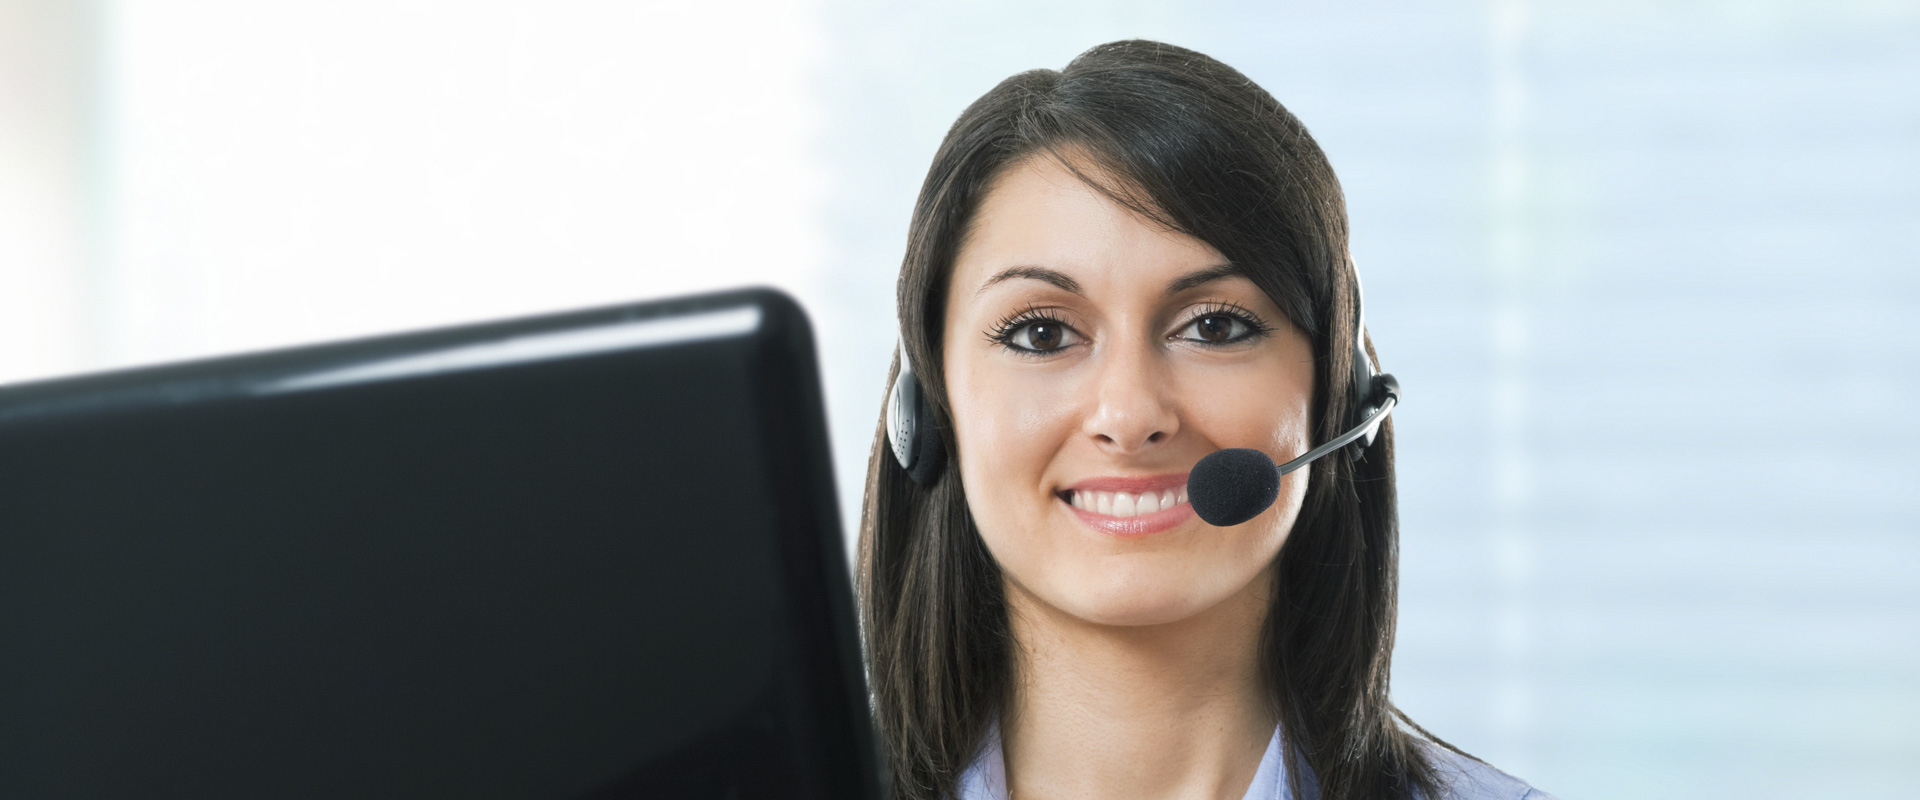 How Our Remote IT Support Service Works